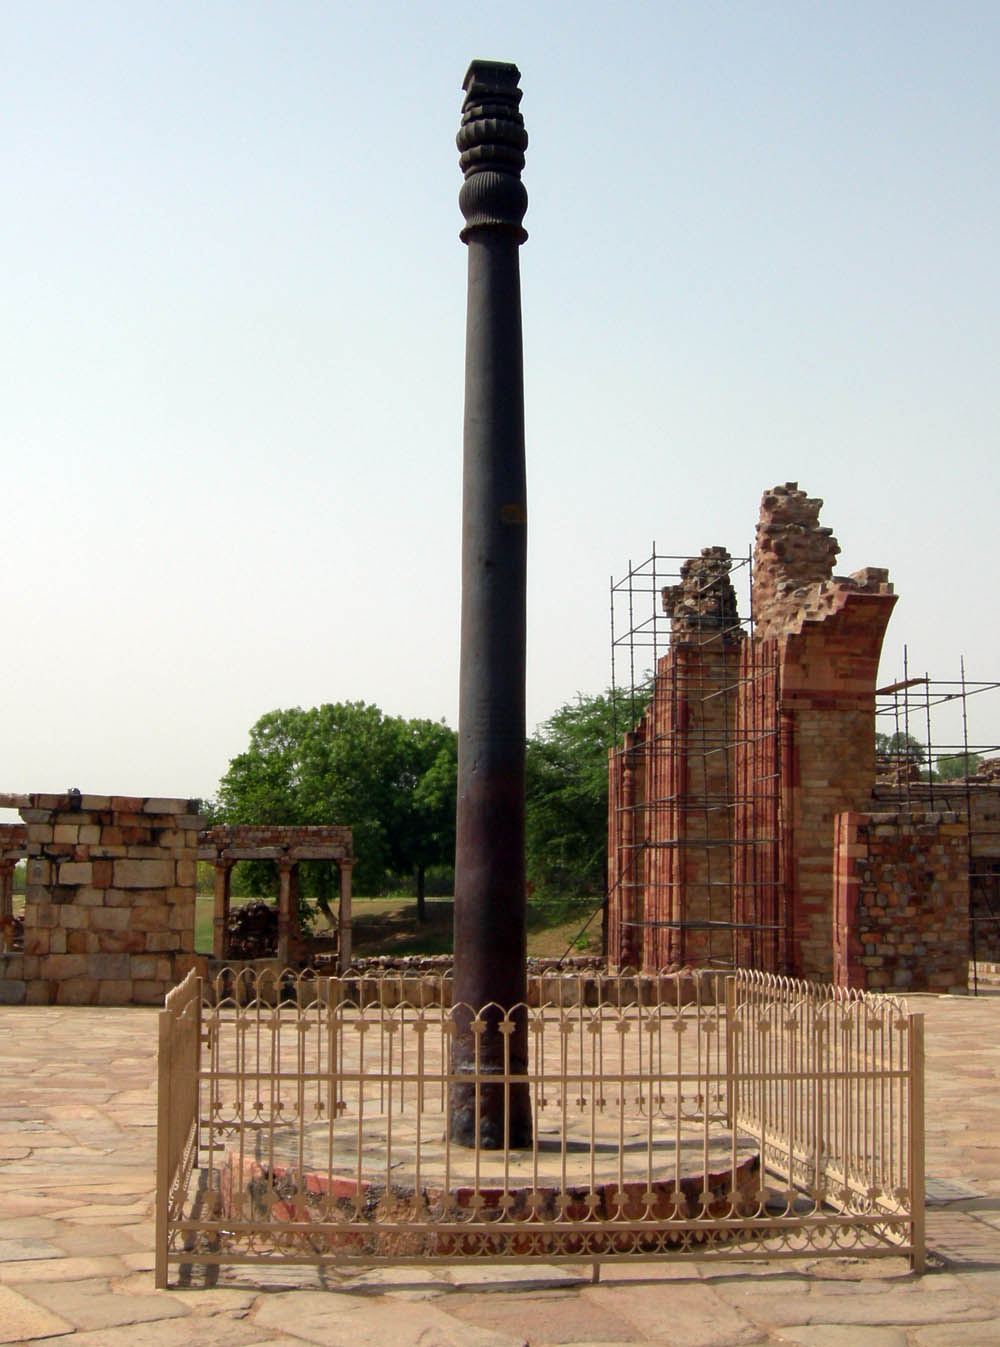 Description English: The iron pillar in the Qutb complex near Delhi, India. Date May 2008 SourceOriginal photograph AuthorPhotograph taken by Mark A. Wilson (Department of Geology, The College of Wooster). [1]